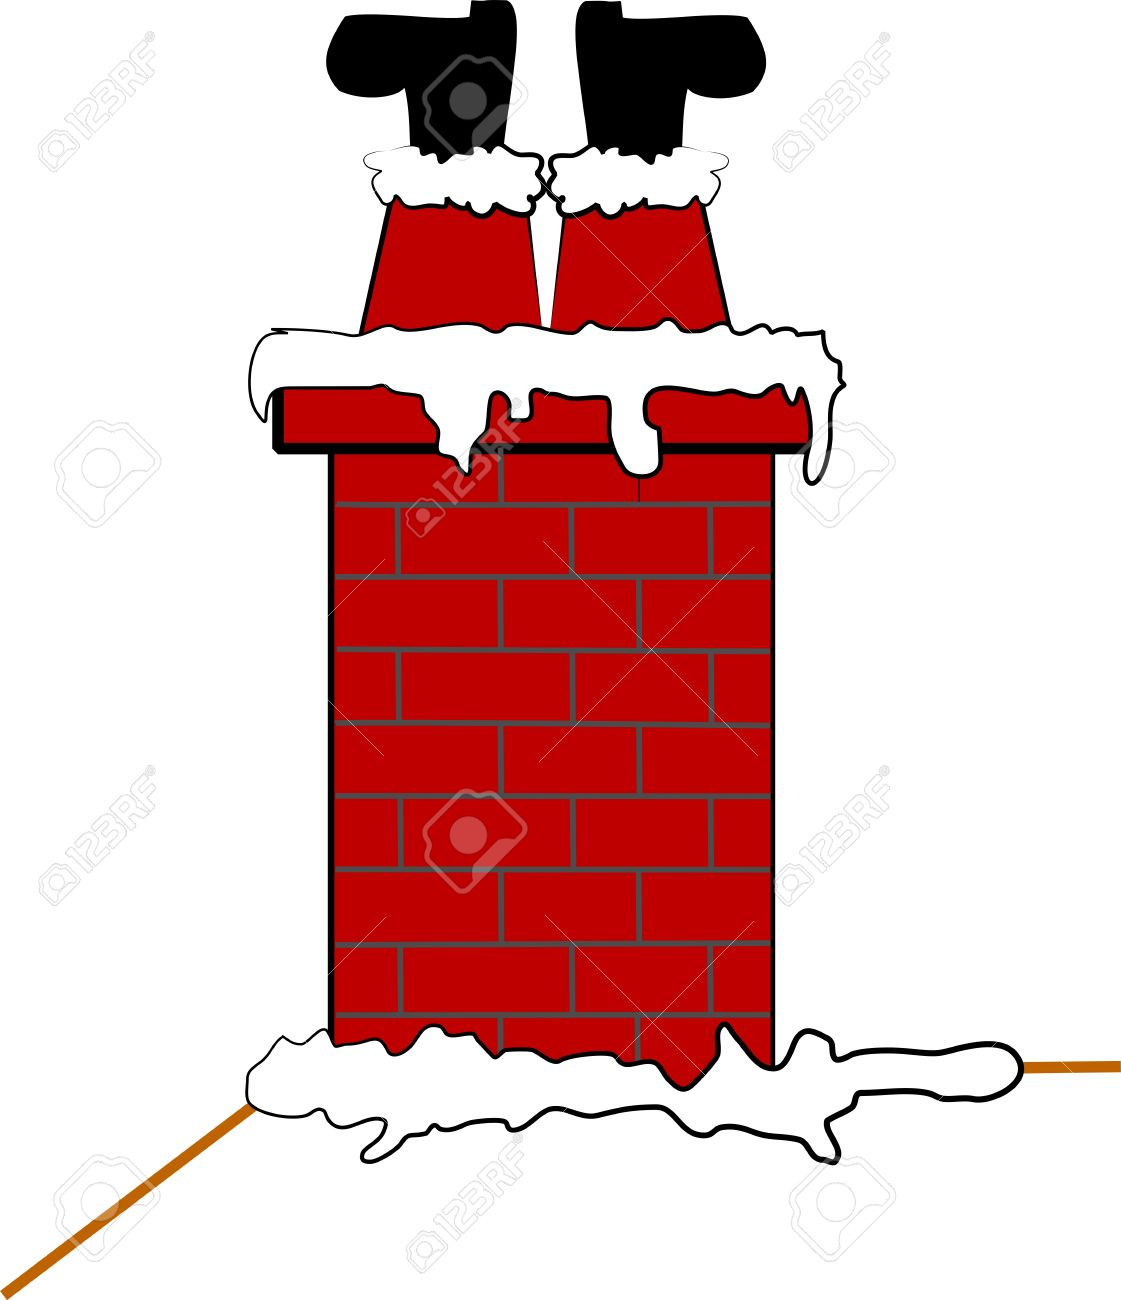 Chimney clipart #18, Download drawings